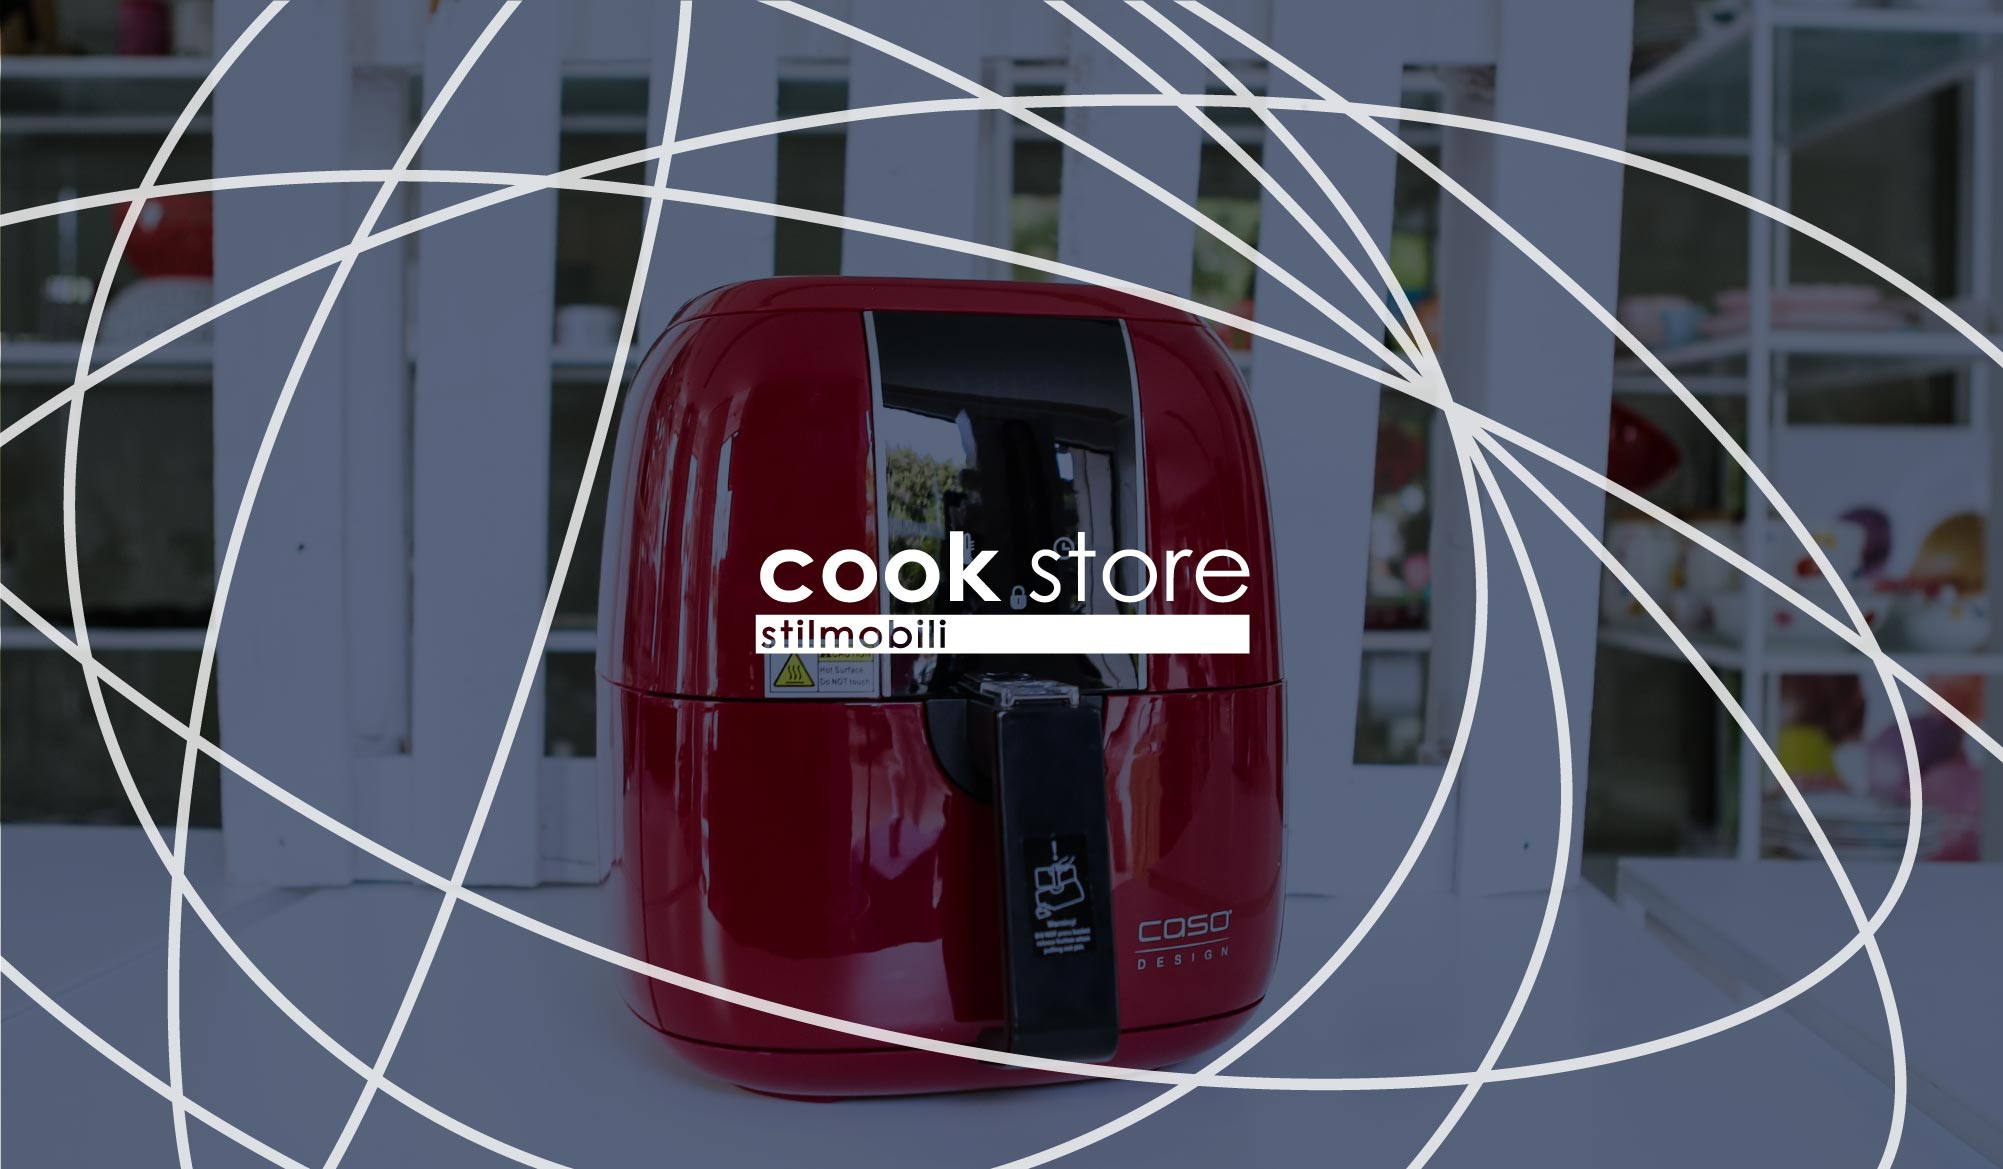 stilmobili_home_cookstore